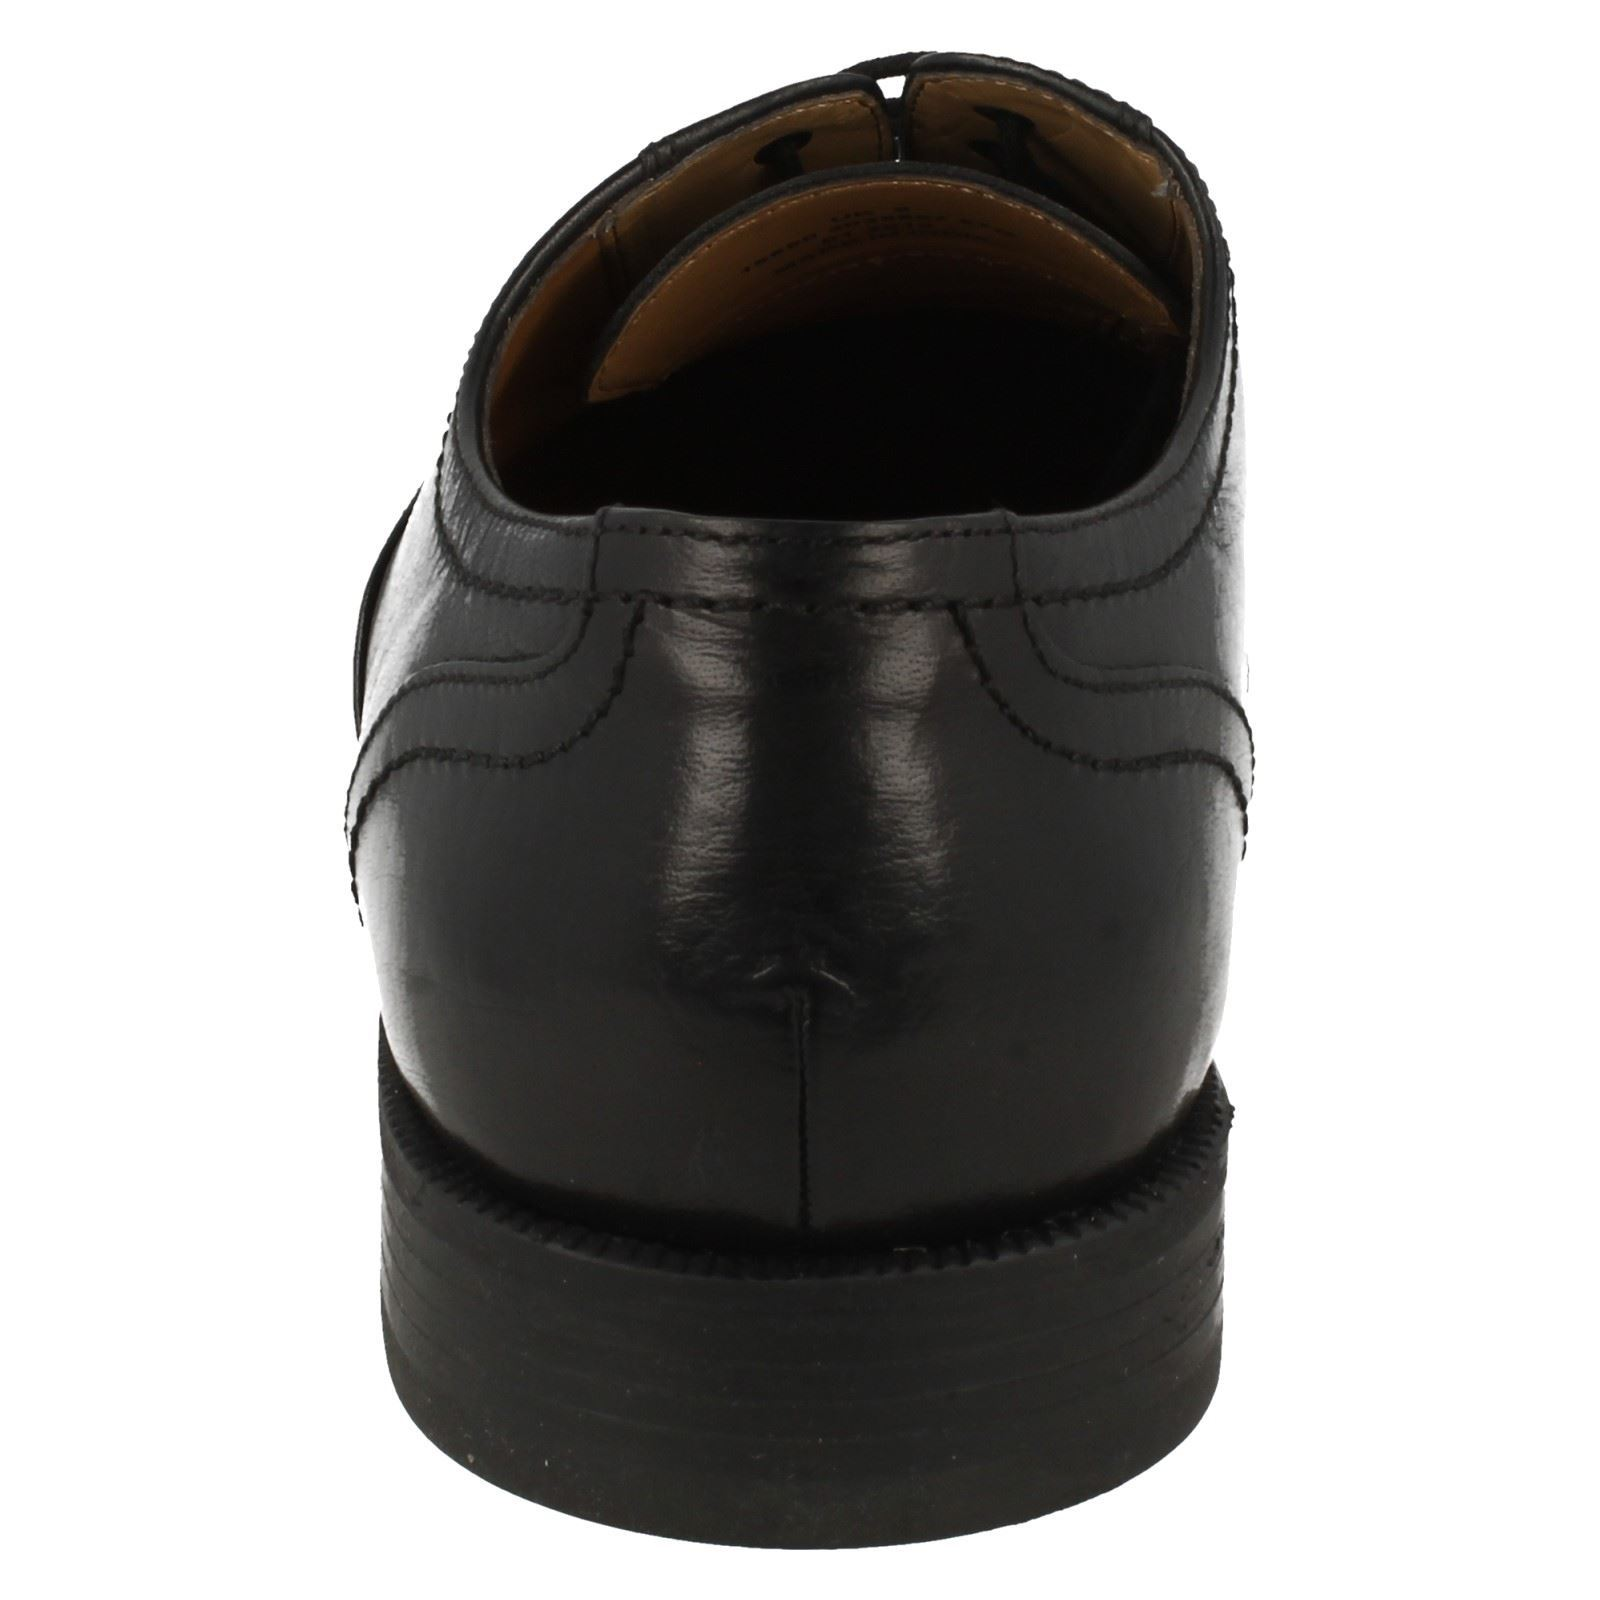 Formales Para Bakra Push Up Zapatos Hombre Clarks Exqwg5OA